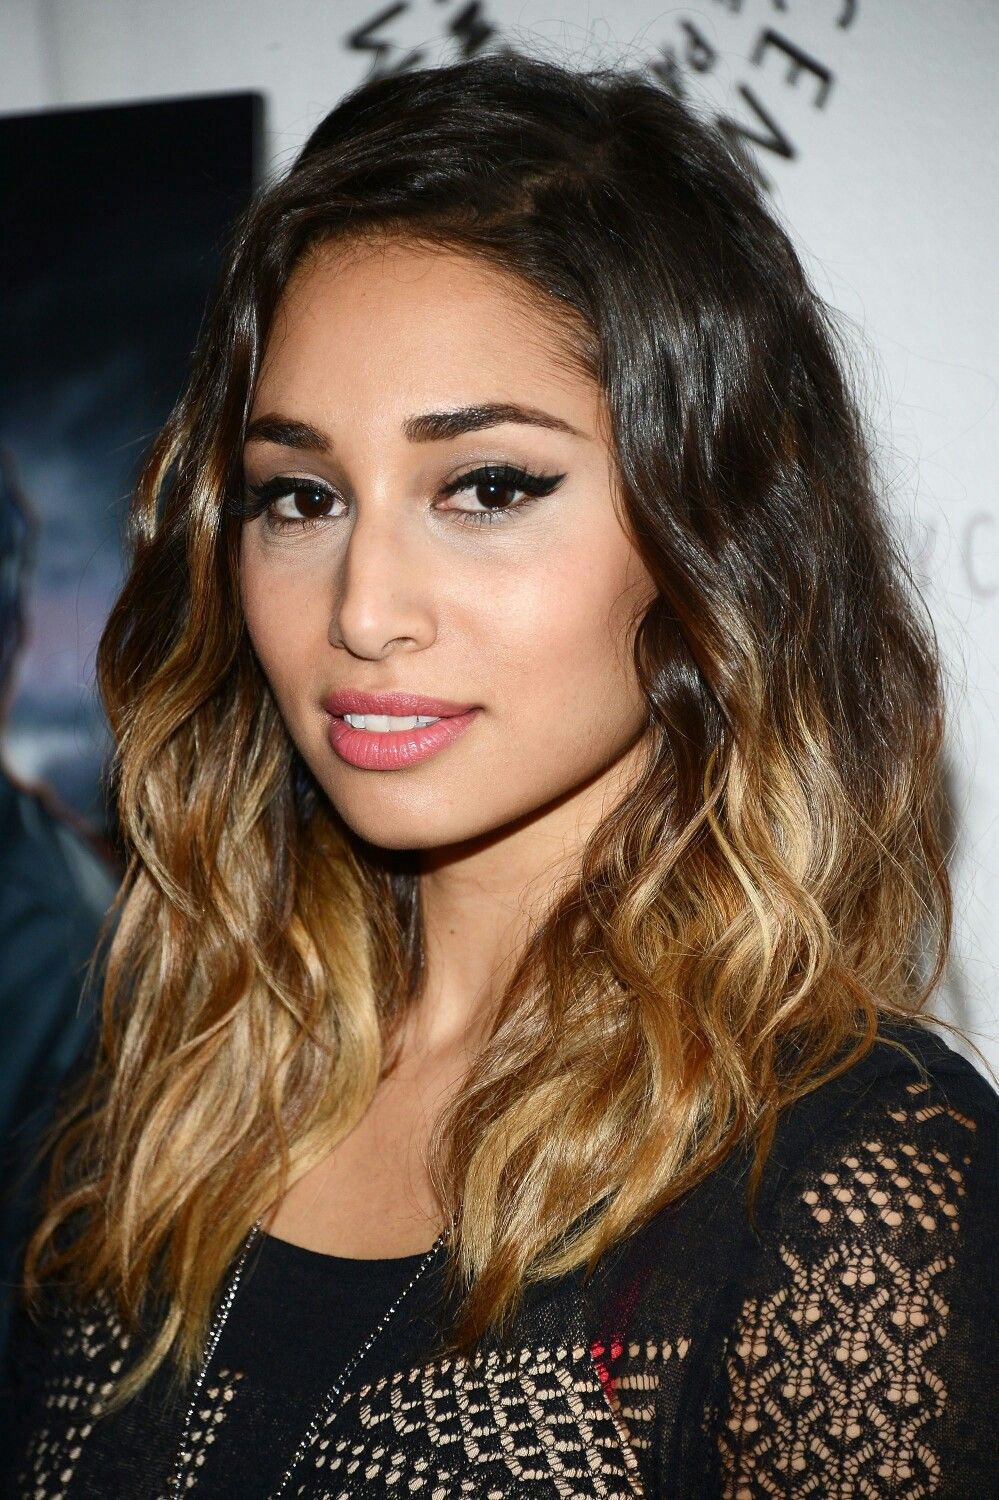 2019 Meaghan Rath naked (51 images), Paparazzi